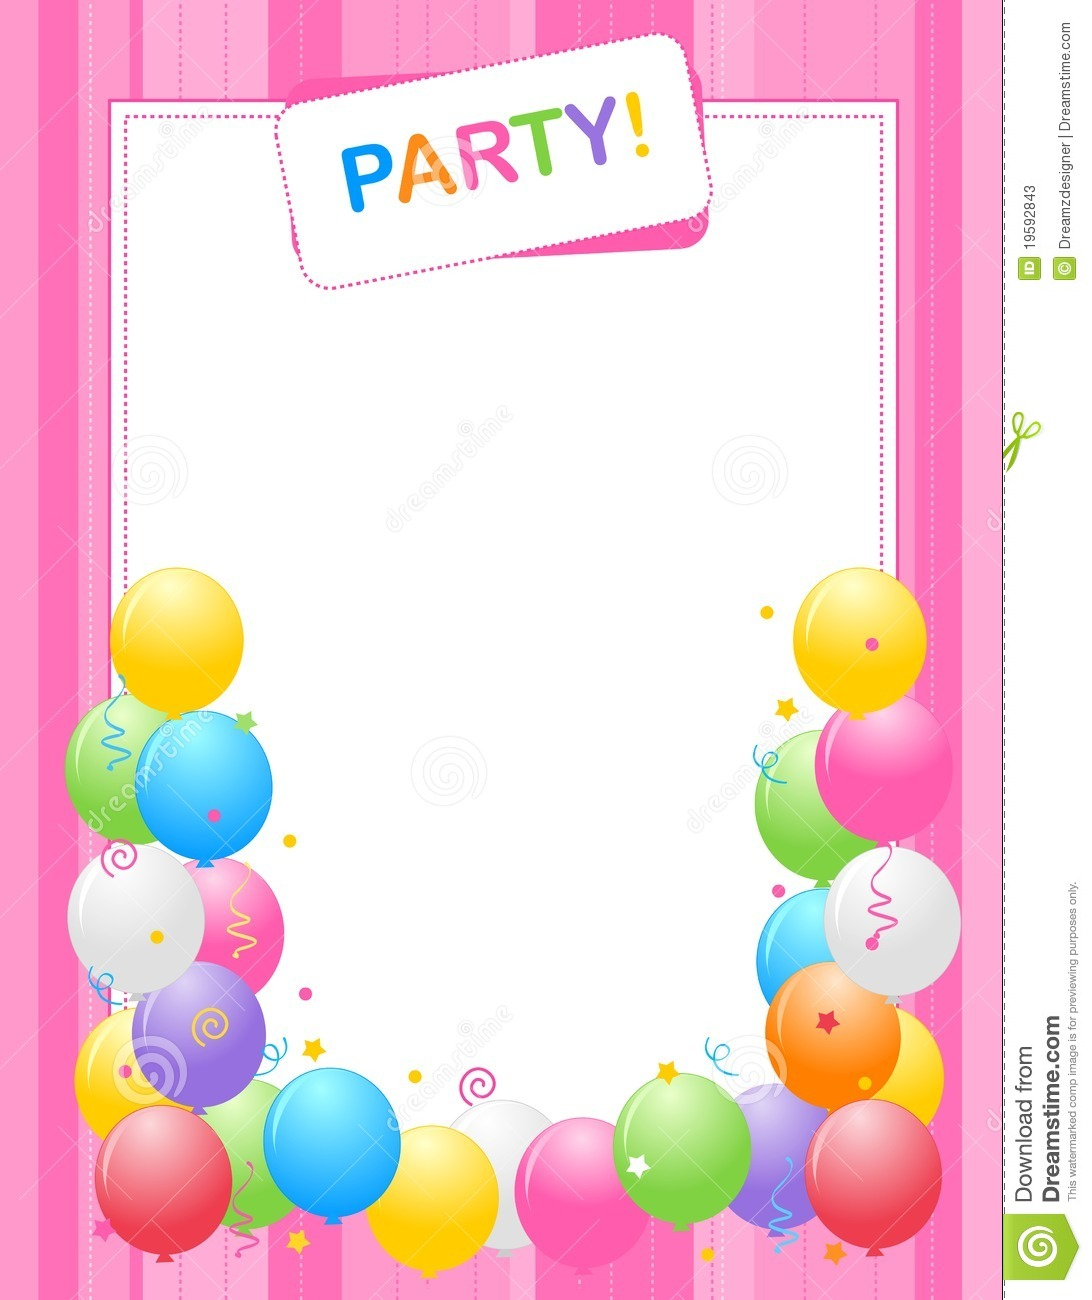 birthday invitation frames ; download-cute-background-frame-for-baby-photo-hd-high-quality-widescreen-interesting-y-invitation-invitations-polka-dot-of-pc